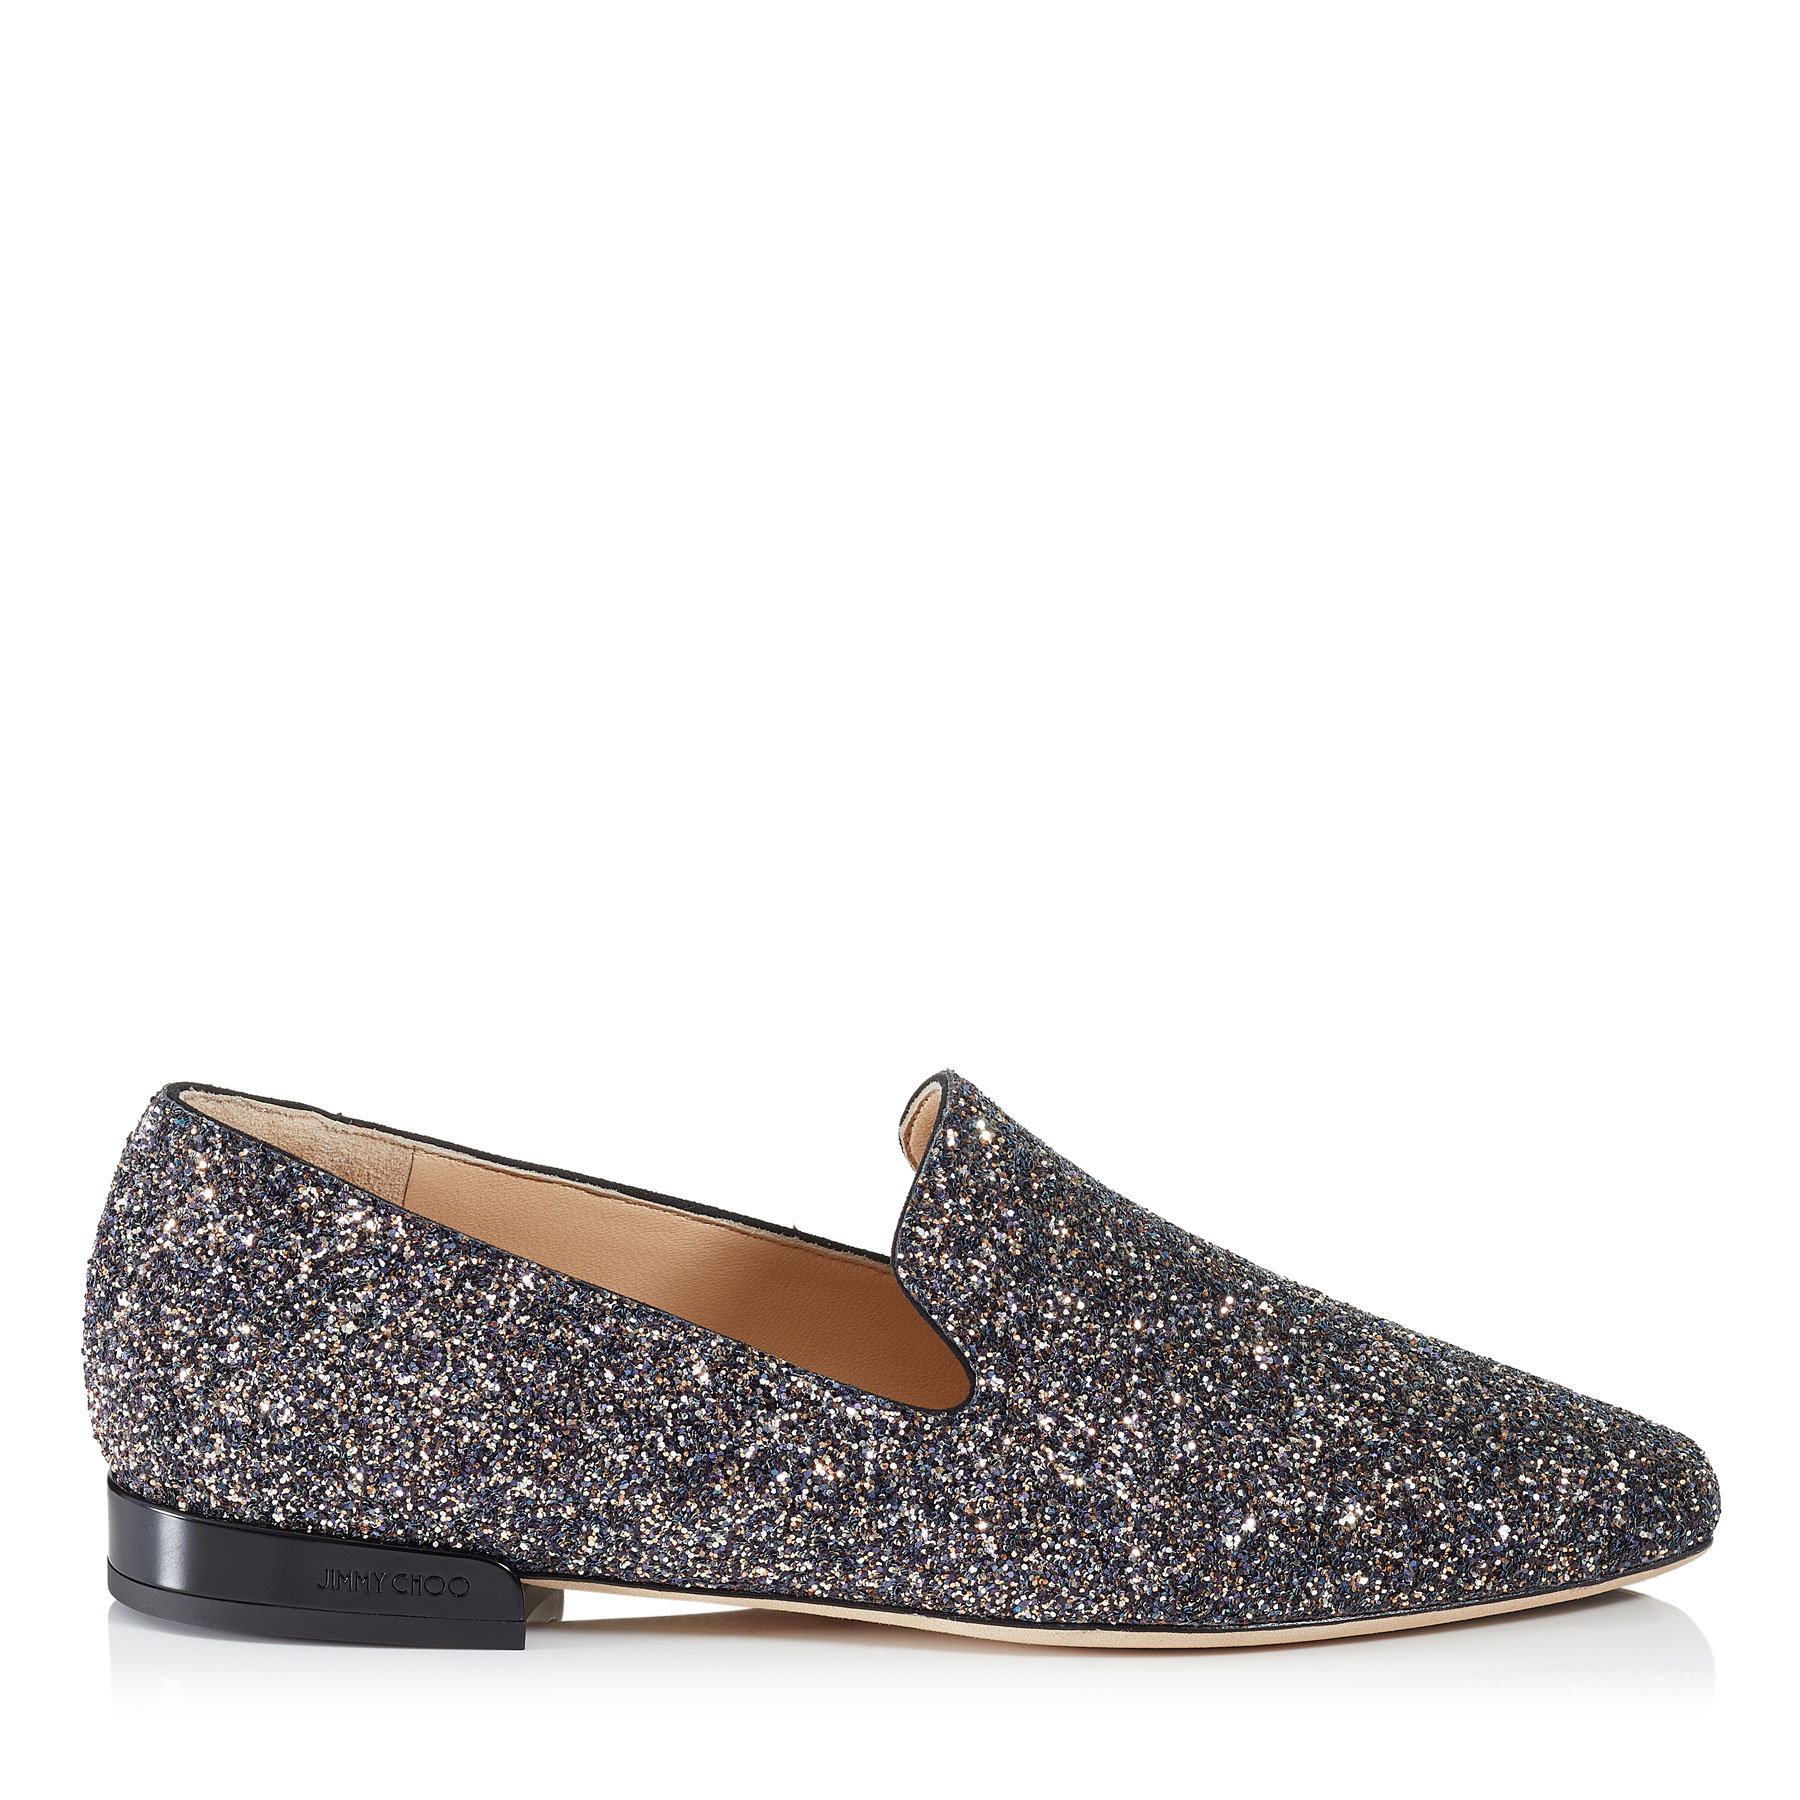 JAIDA FLAT Twilight Glitzy Glitter Fabric Square Toe Slippers by Jimmy Choo